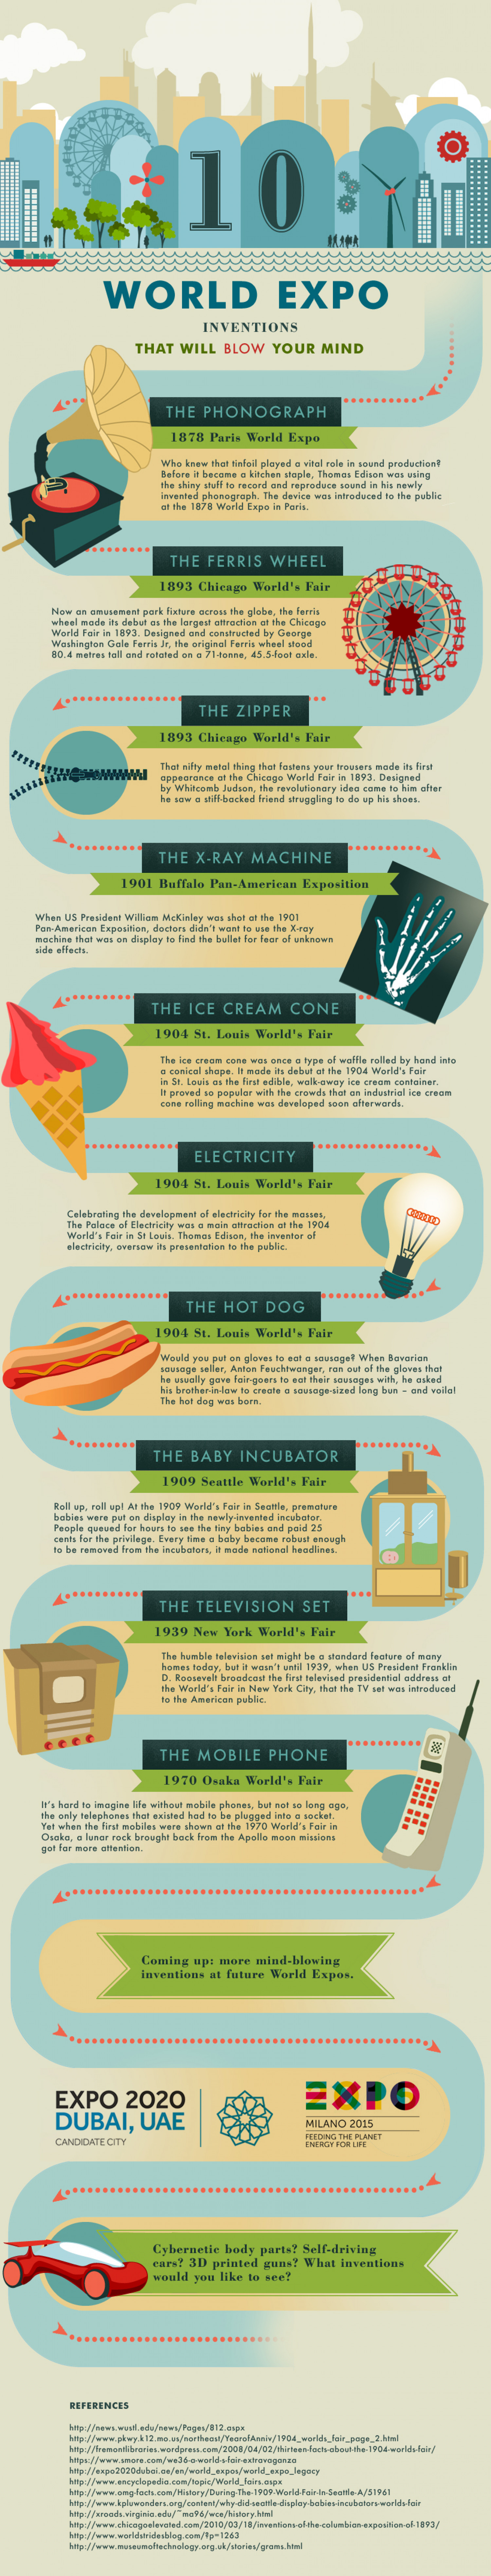 10 World Expo Inventions That Will Blow Your Mind Infographic